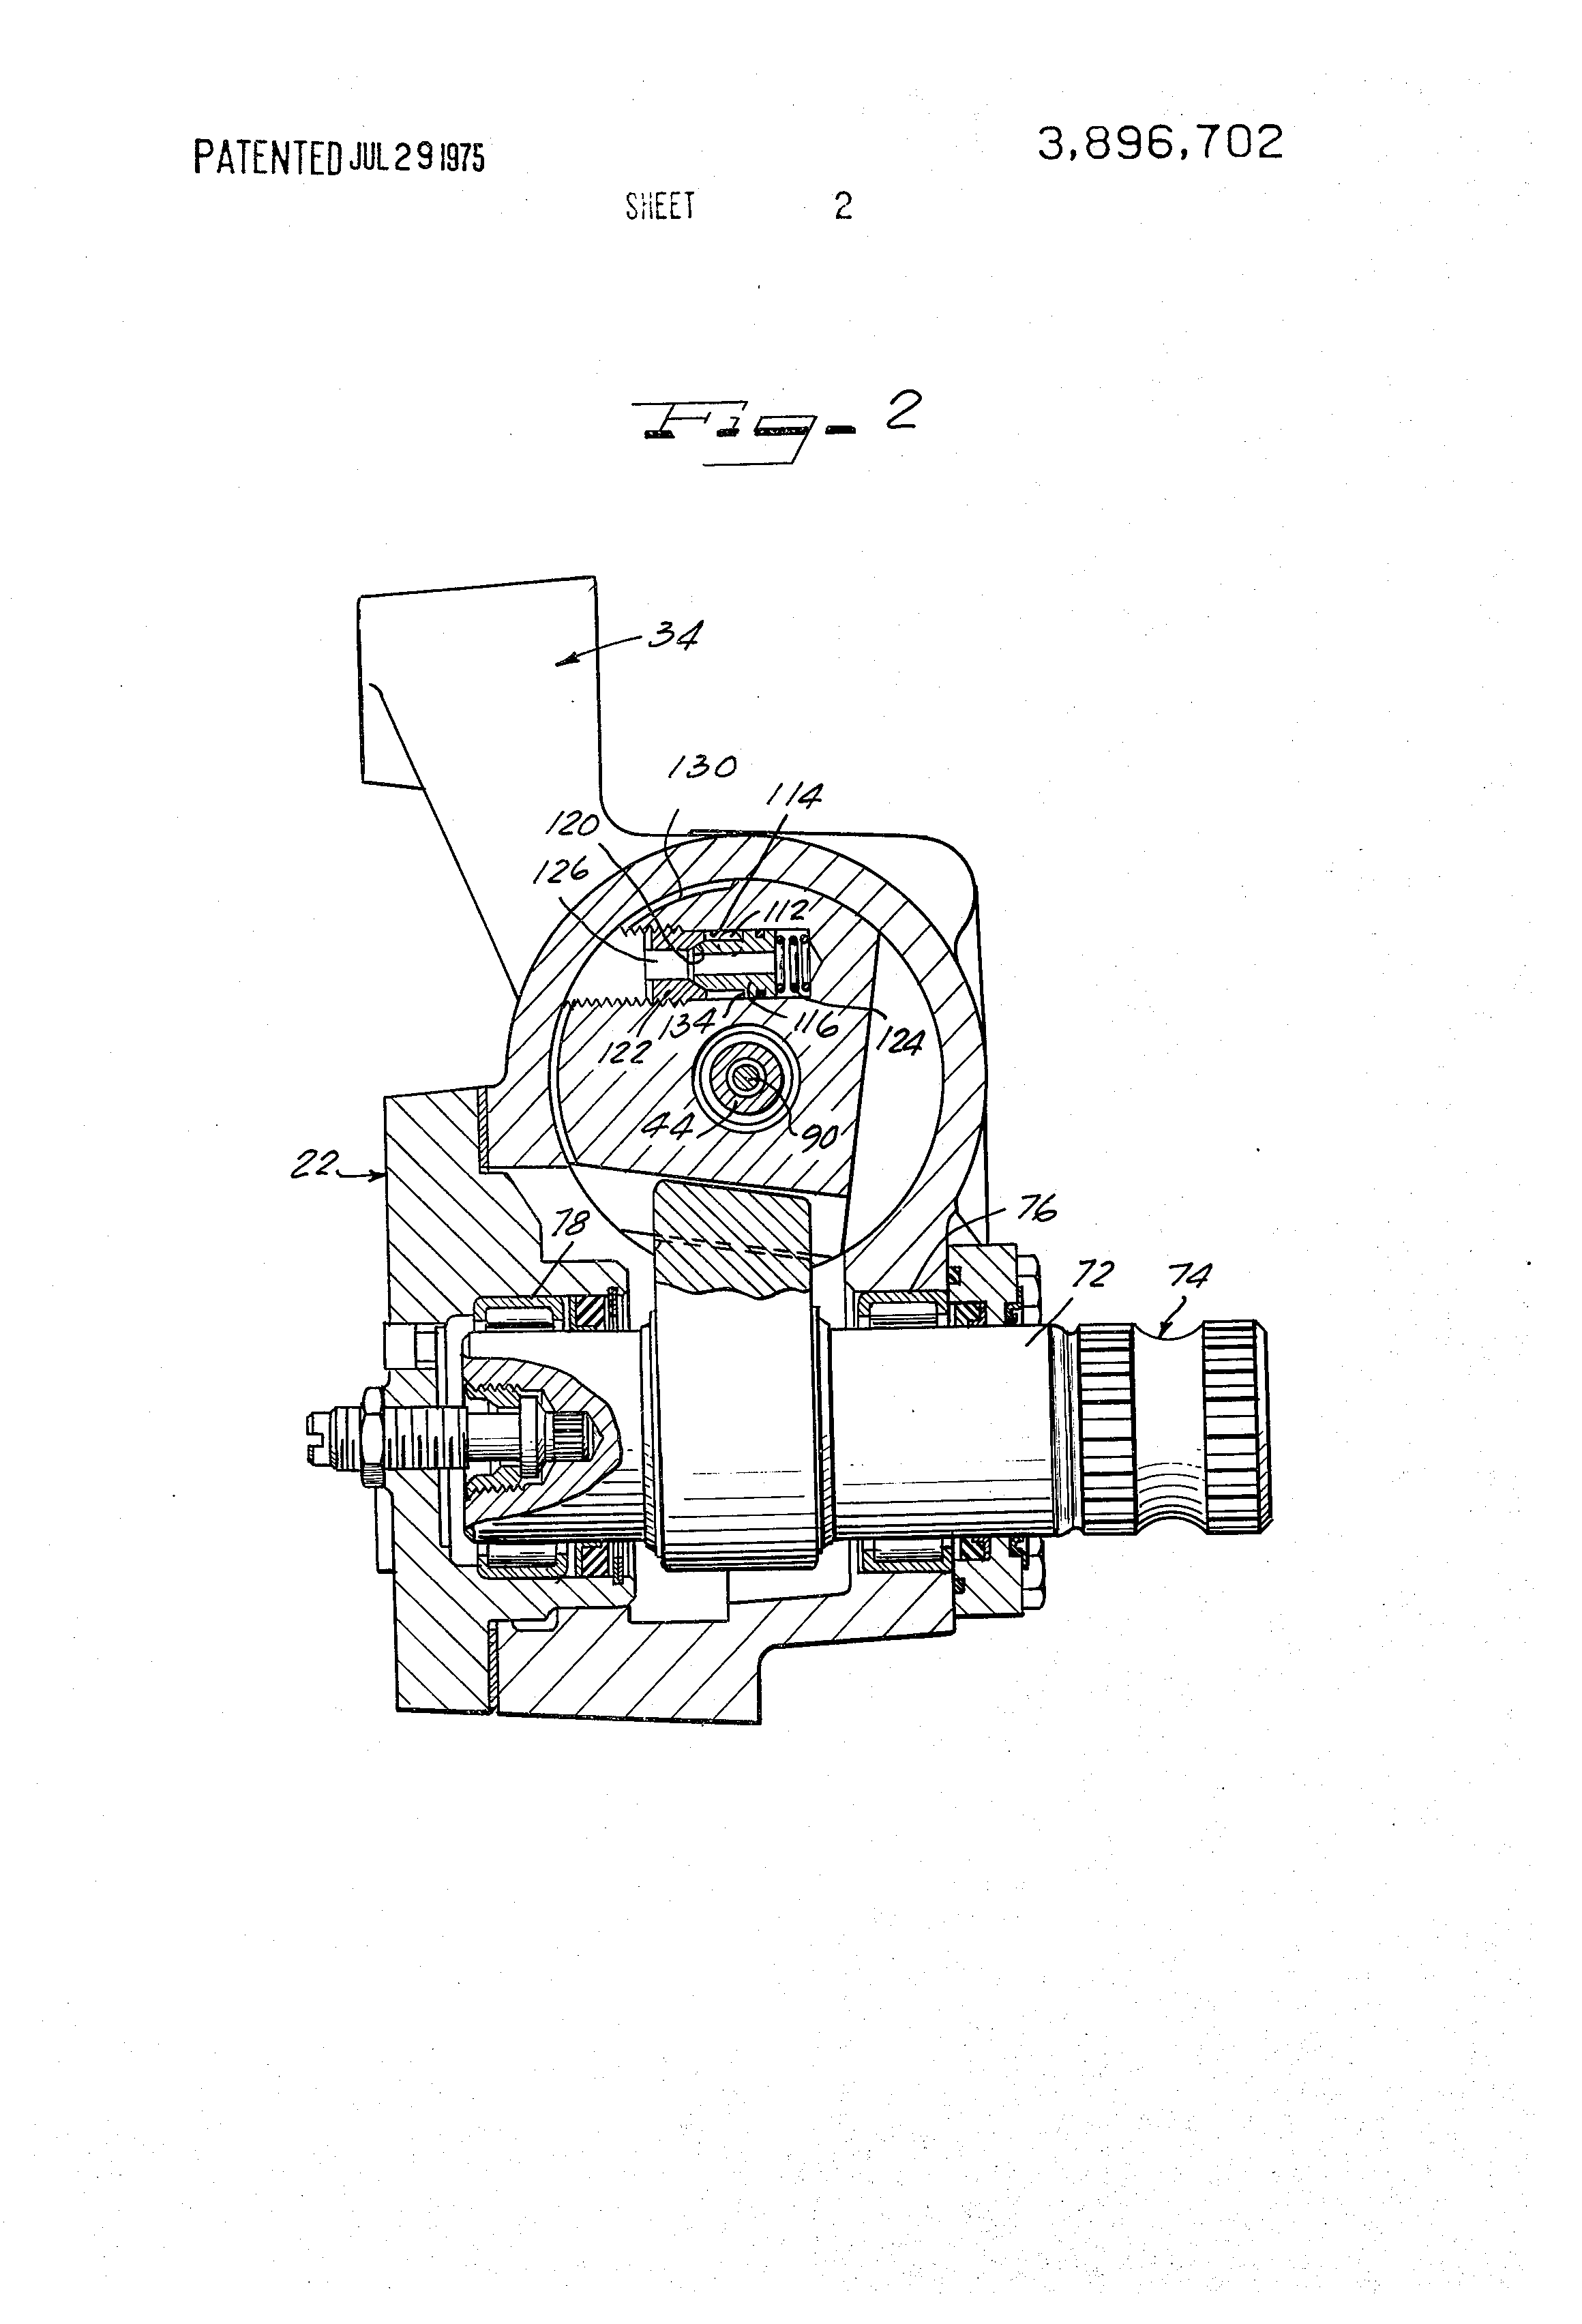 Pressure Relief Valve Exploded View